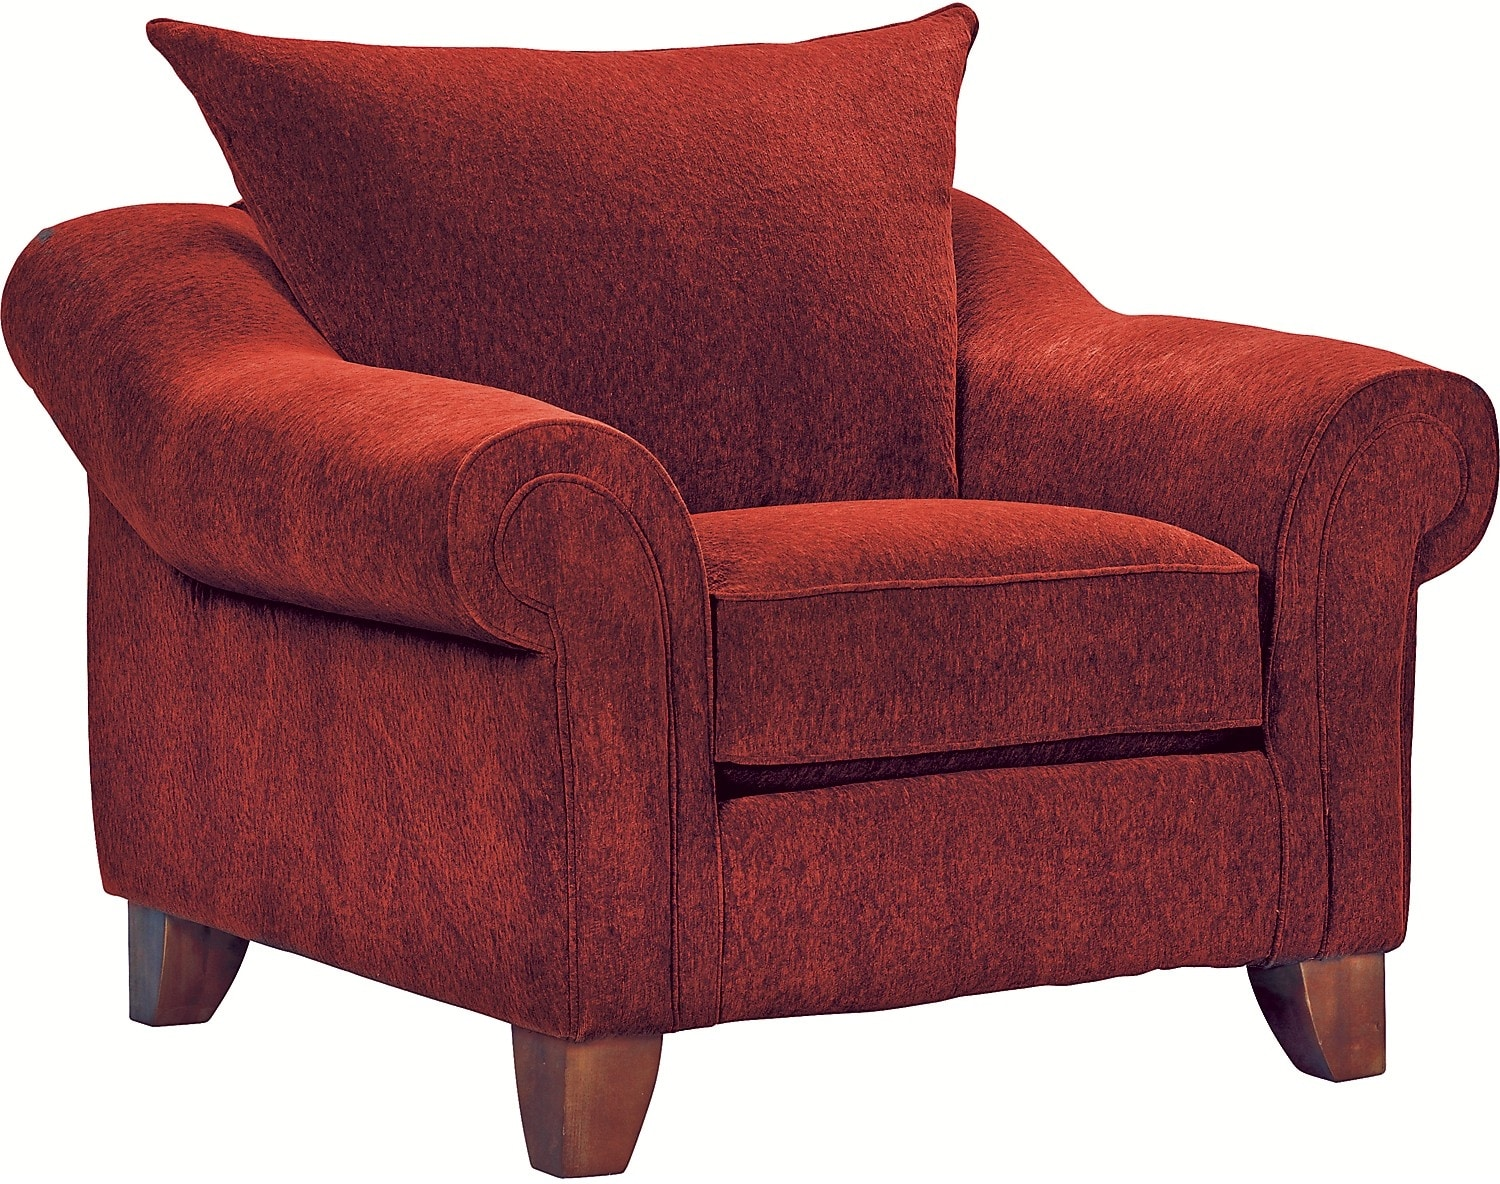 Reese Chenille Chair – Red